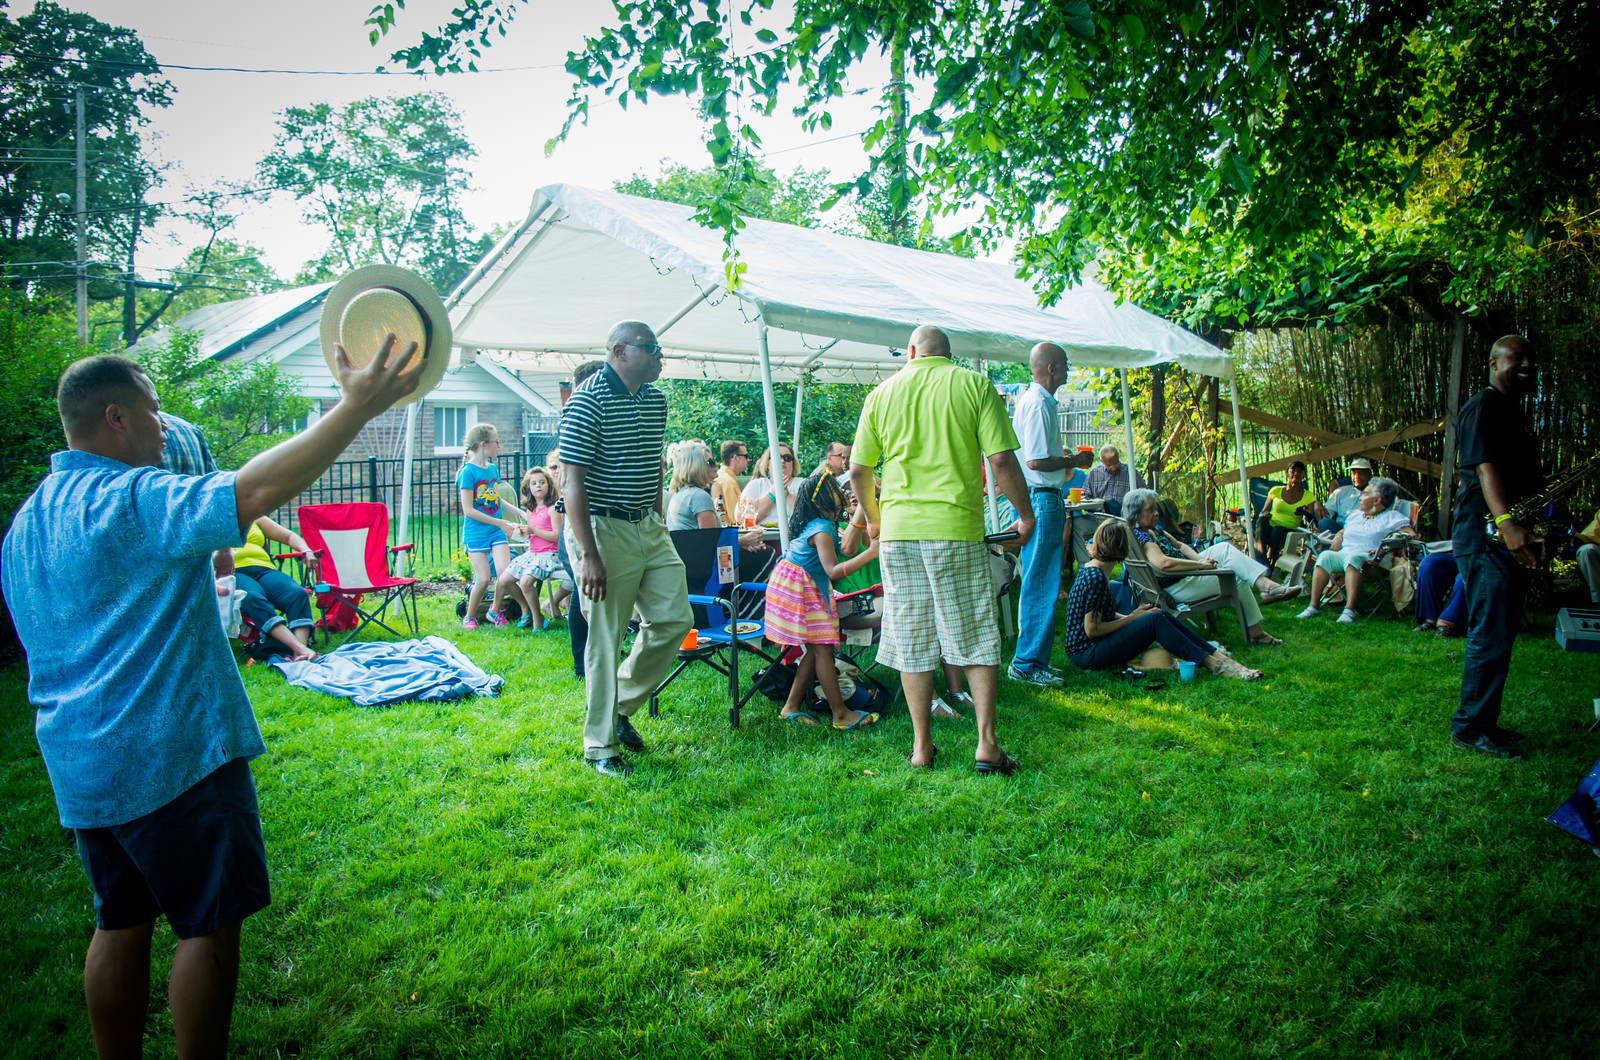 20140525-Memorial Day Party-PMG_0880-X3.jpg